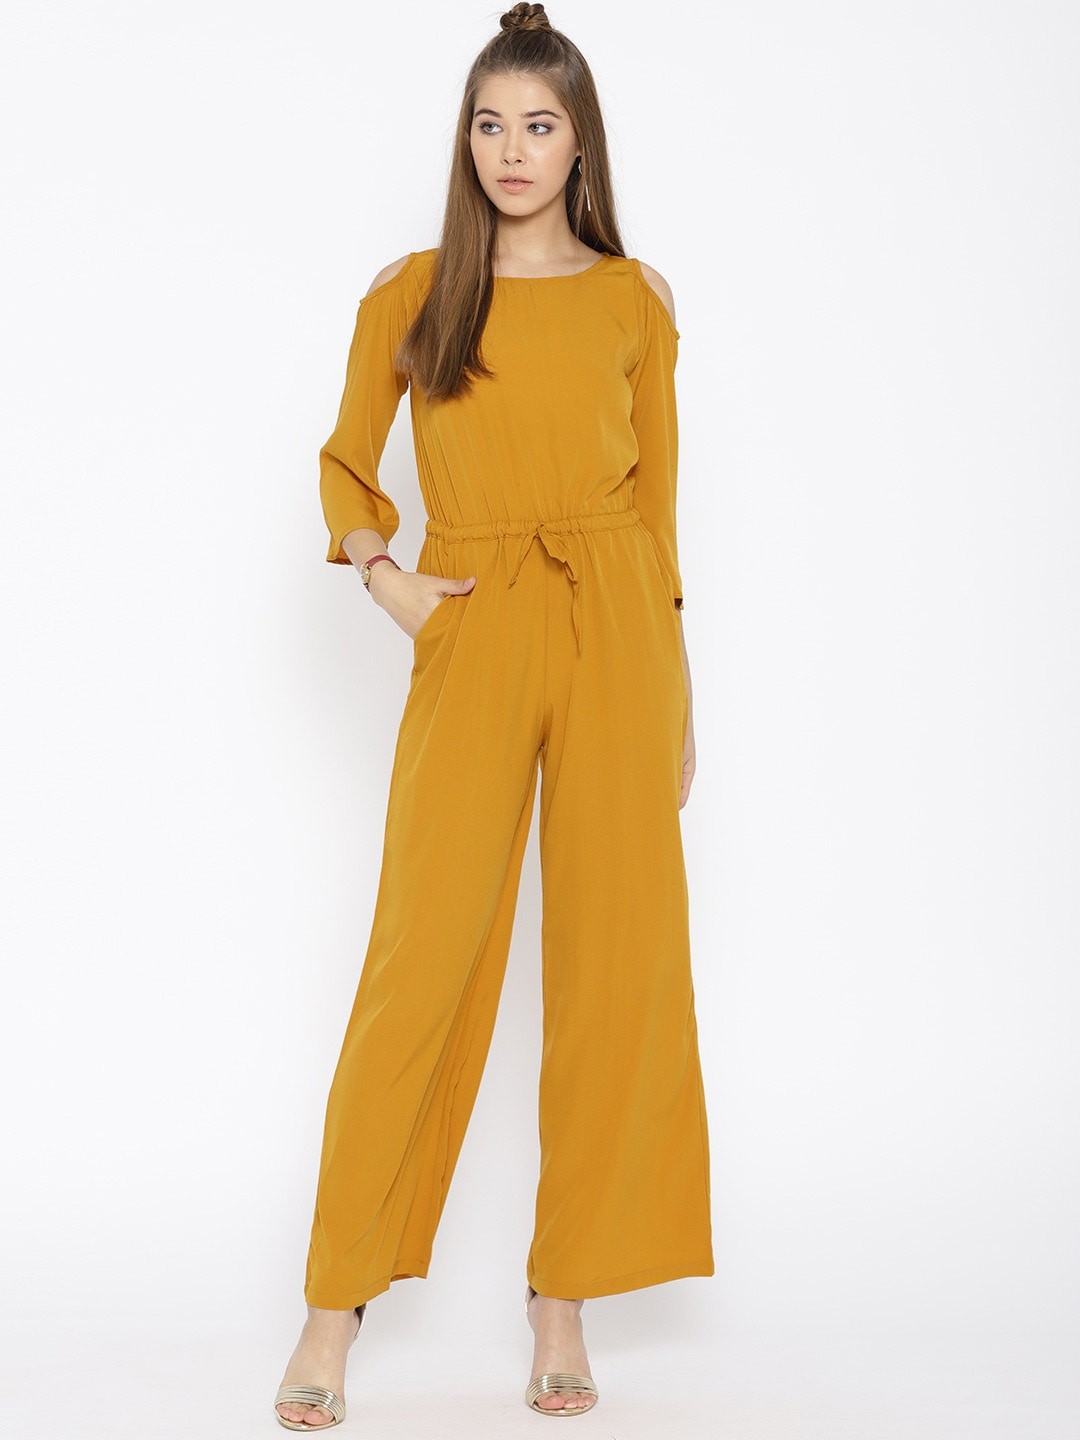 02f1048e8a5 Women s Jumpsuits - Buy Jumpsuits for Women Online in India